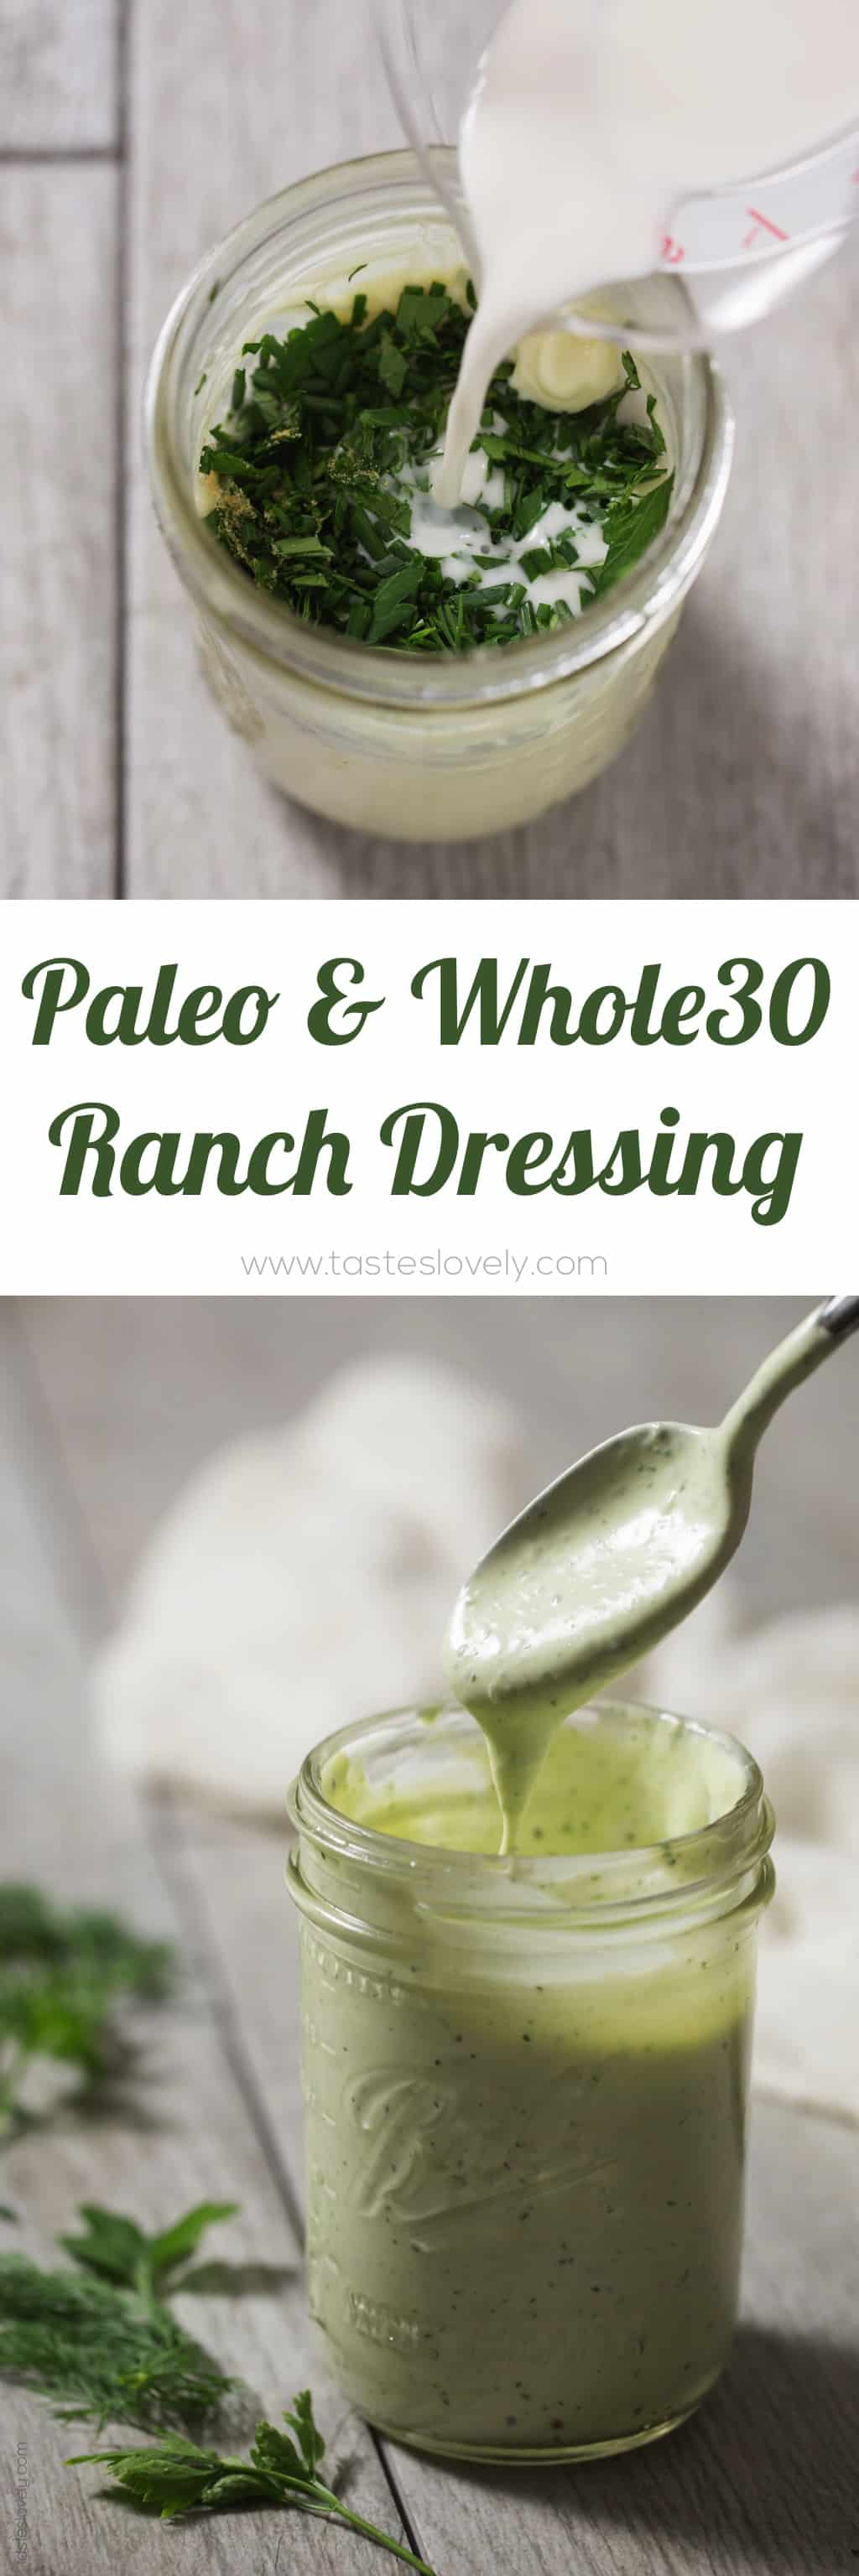 Homemade Paleo + Whole30 Ranch Dressing - the most delicious dairy free ranch dressing or dip!